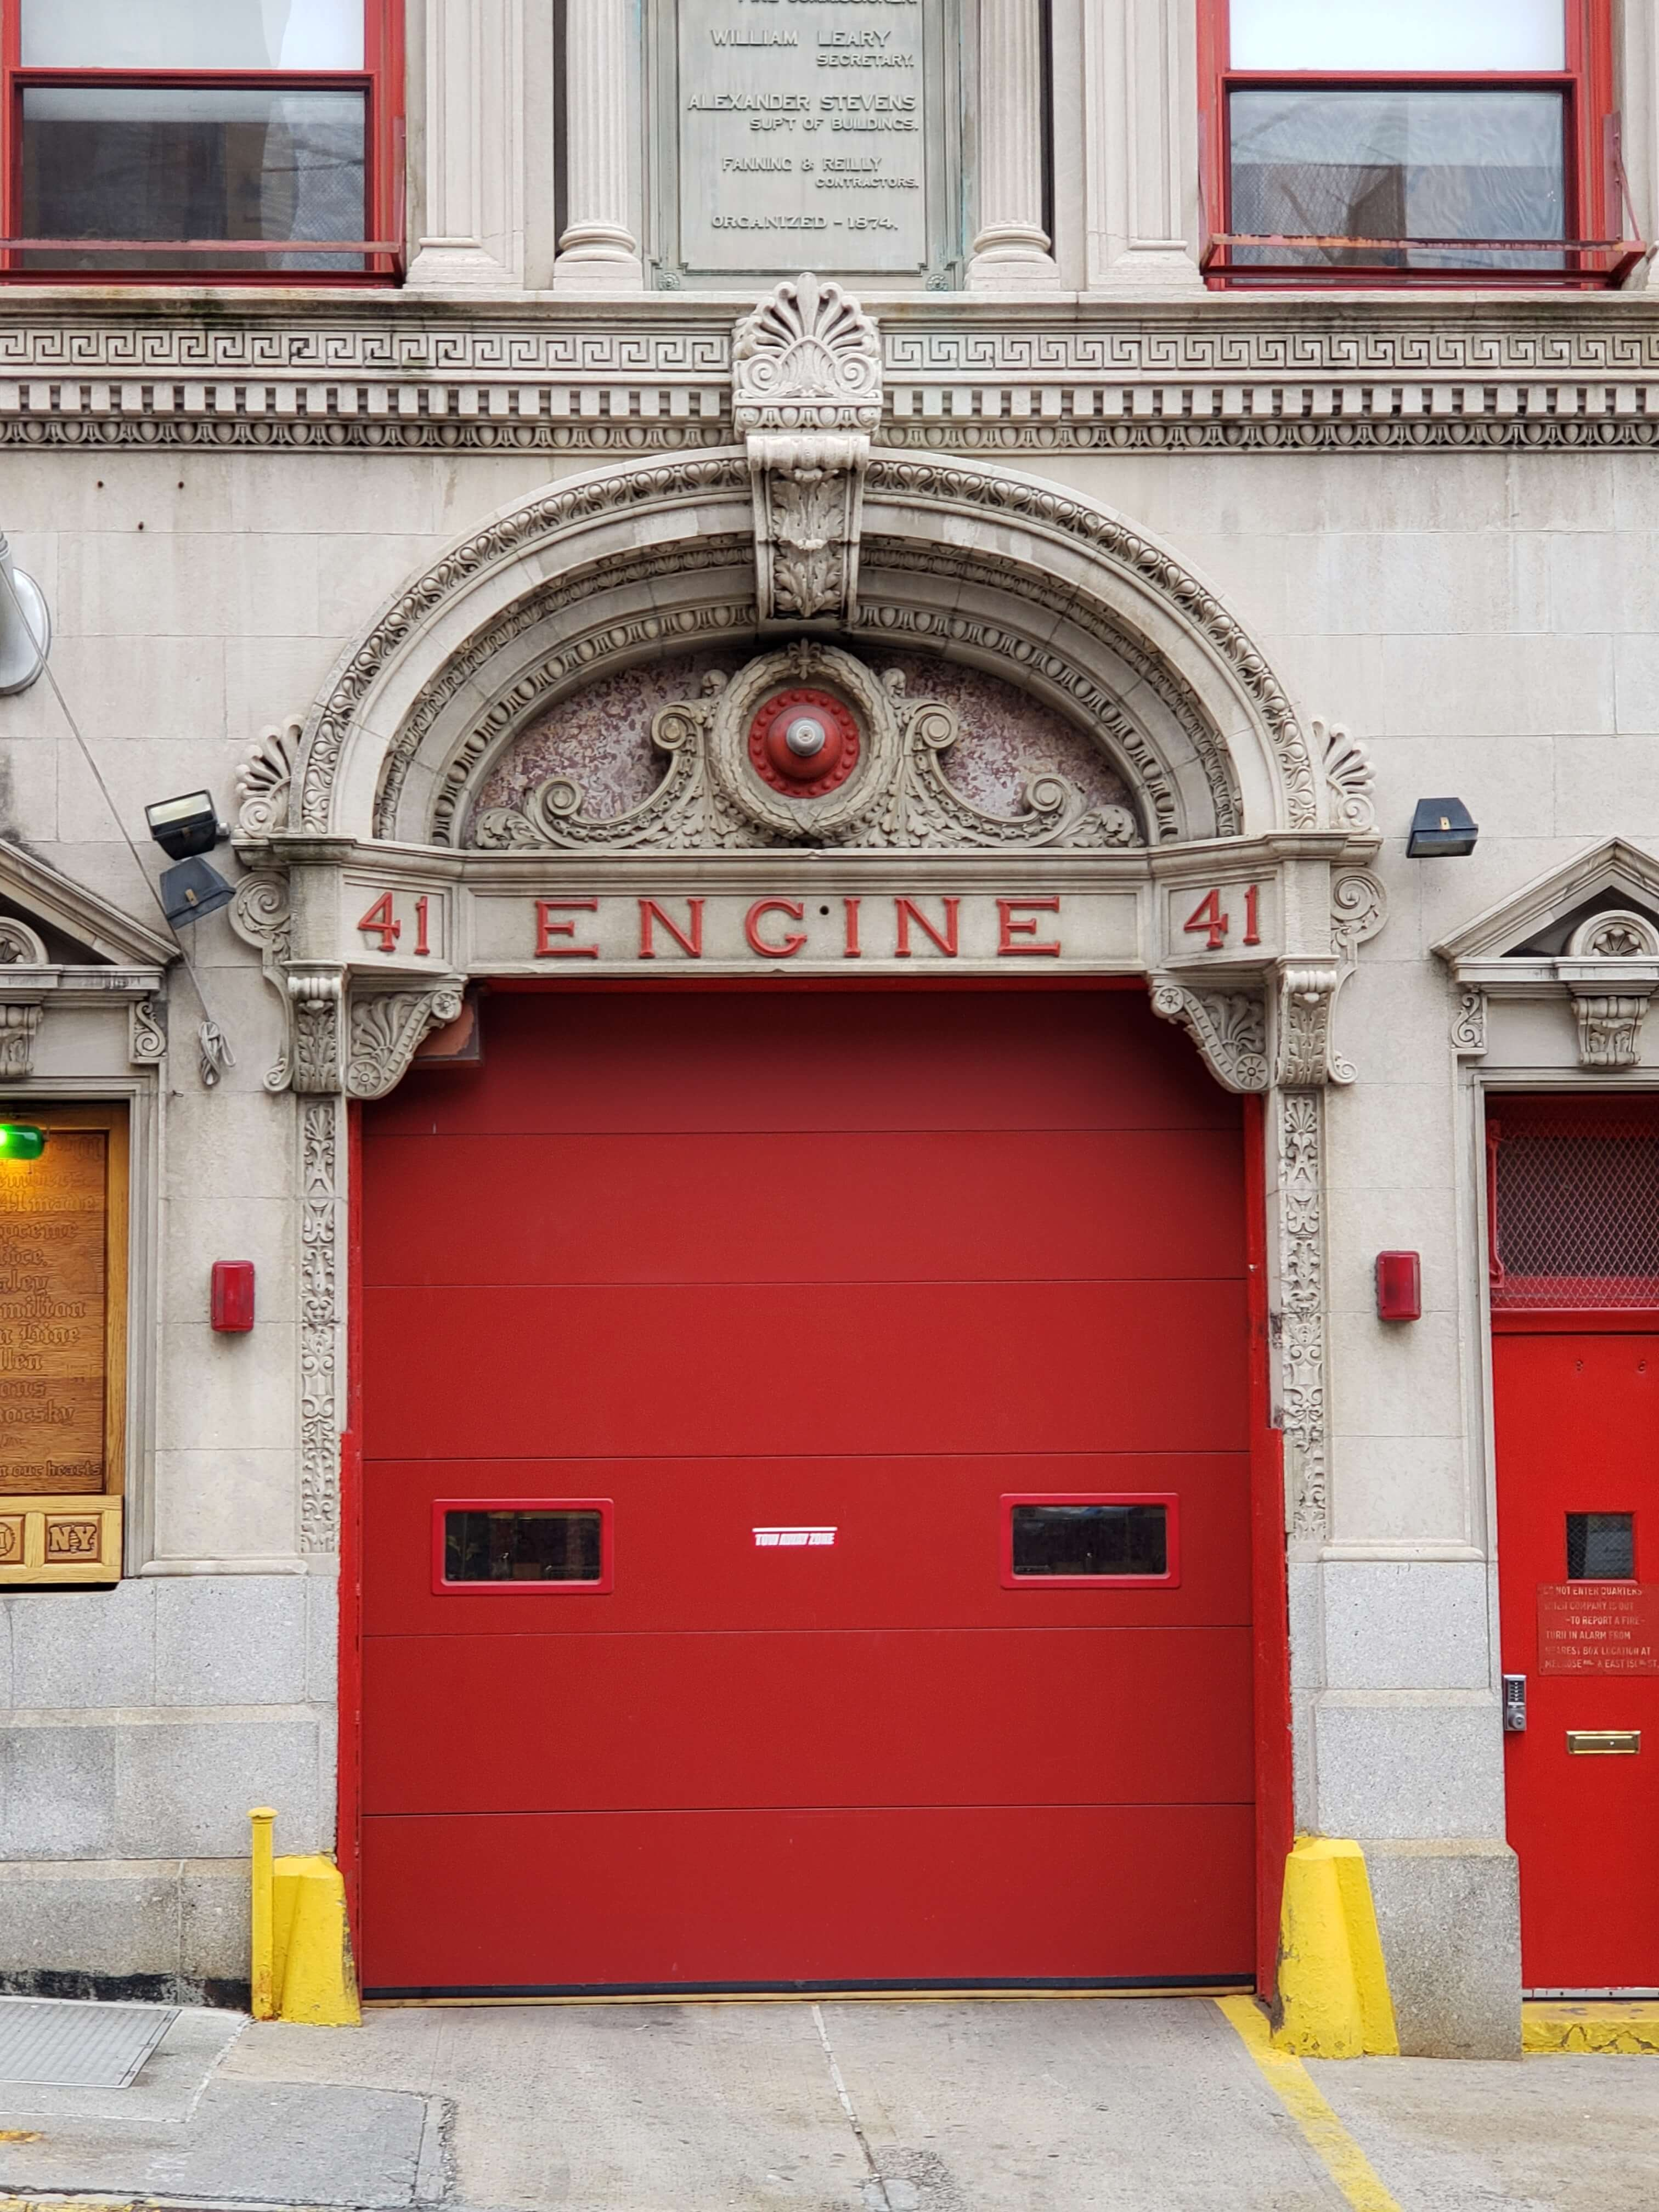 The red door distinguishes a Firehouse from civilian residences. (Photographed by the author, 2018)